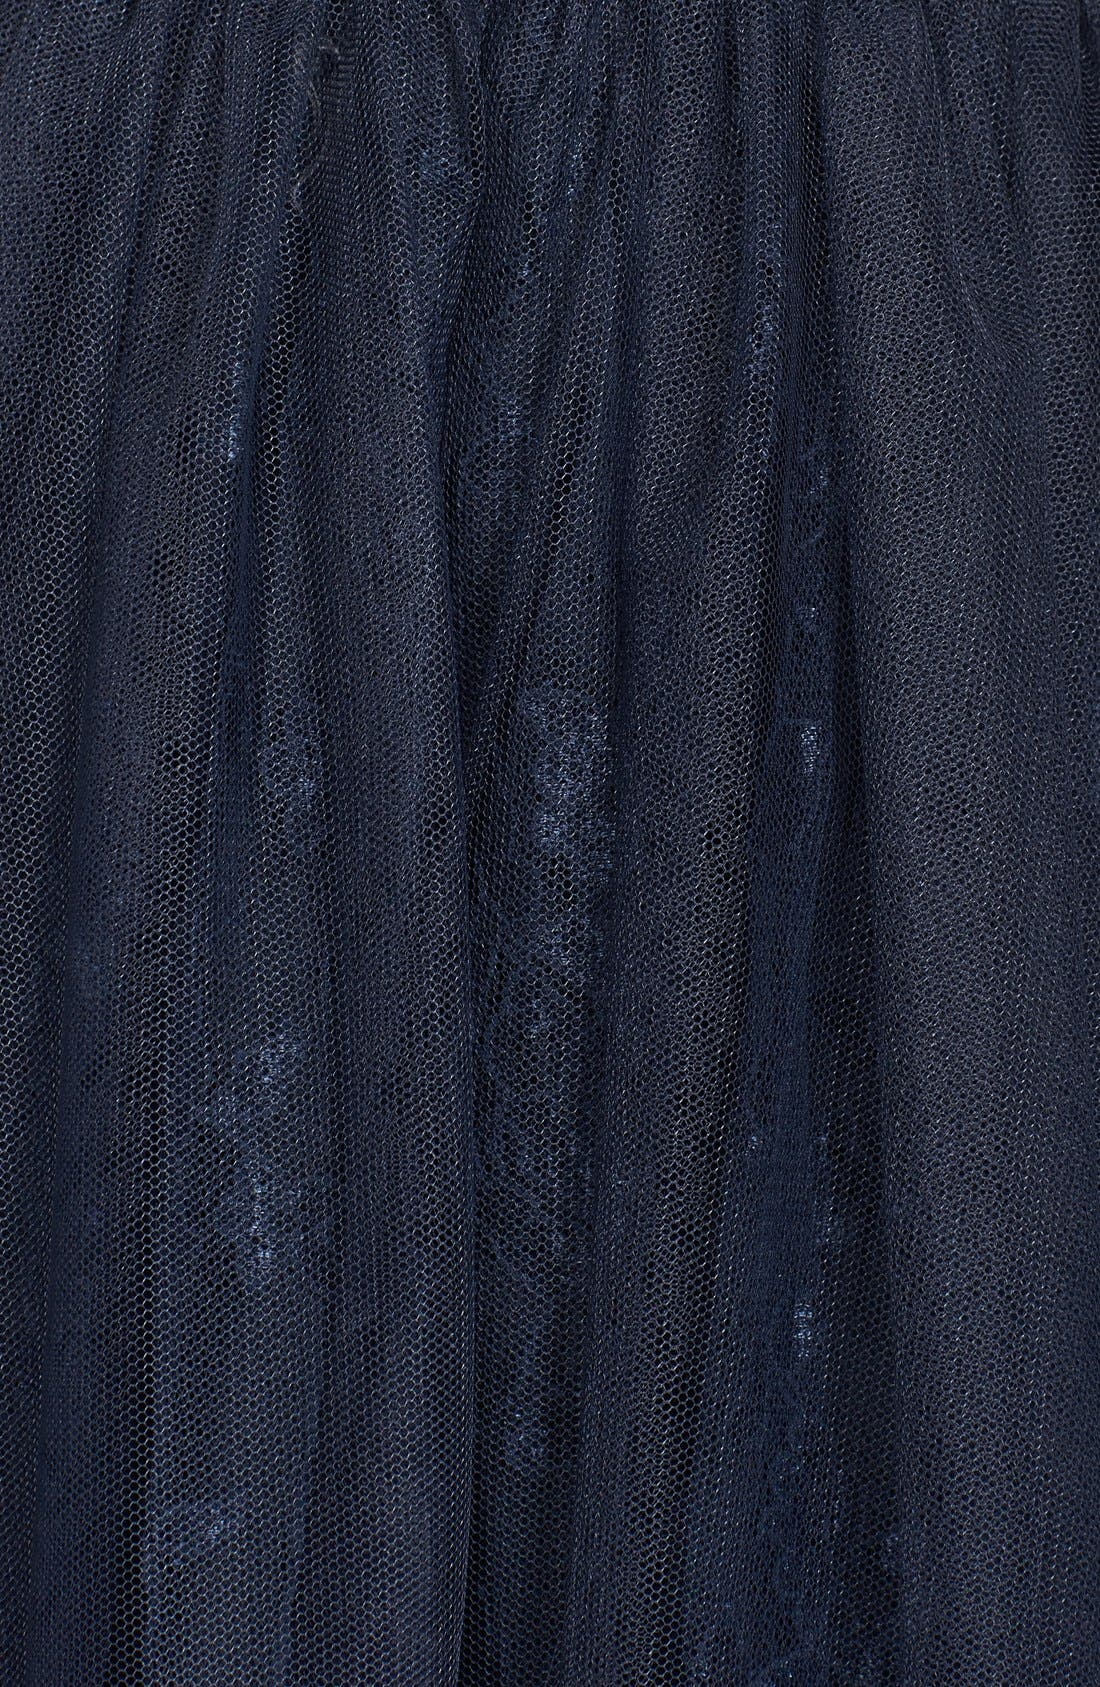 Tulle Overlay Lace Fit & Flare Dress,                             Alternate thumbnail 3, color,                             NAVY